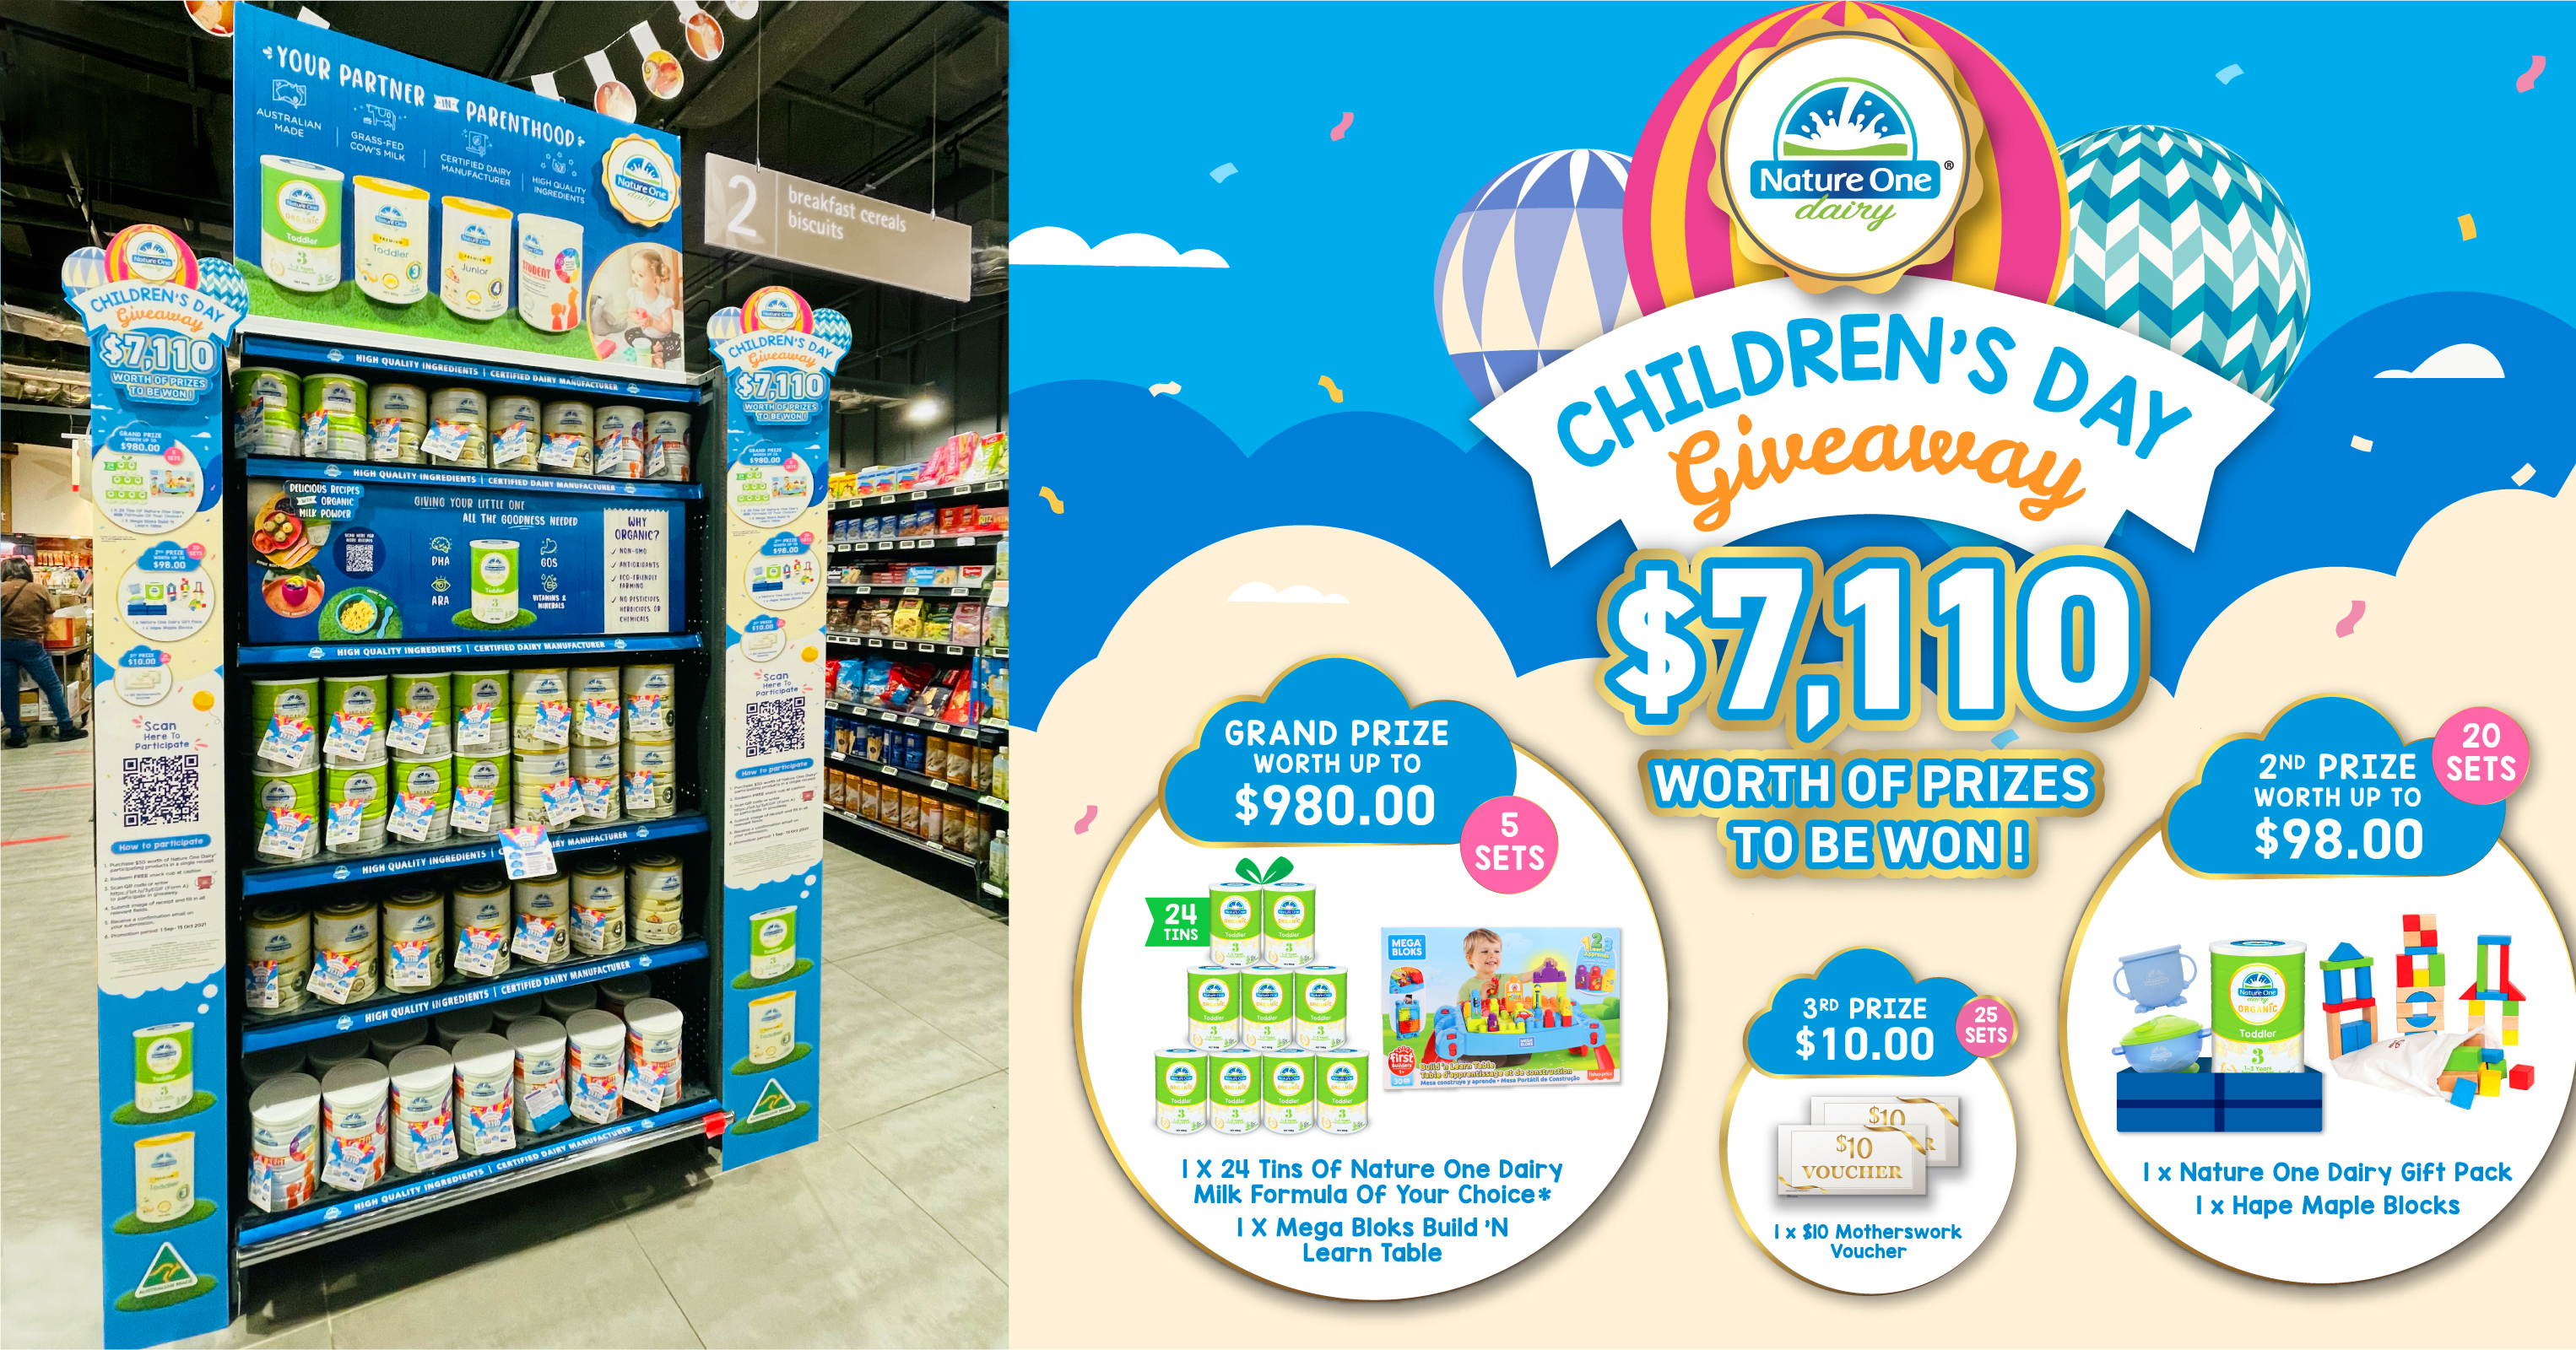 Spend $50 on selected Nature One Dairy® products and get a chance to win prizes worth up to $980!